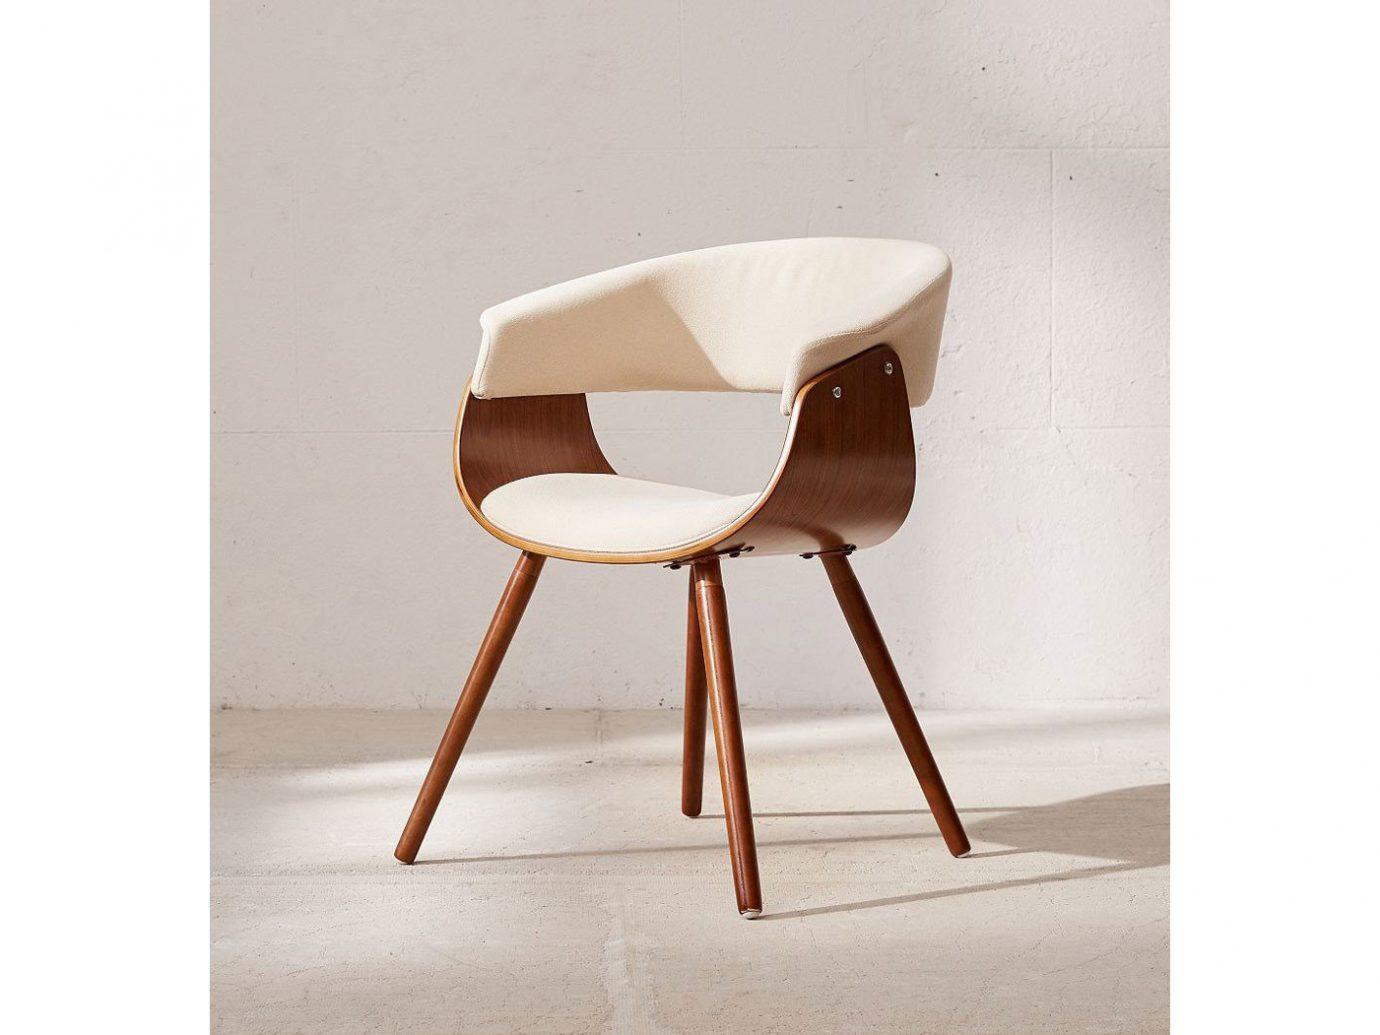 City Copenhagen Kyoto Marrakech Palm Springs Style + Design Travel Shop Tulum furniture chair product design seat product armrest wood plywood table angle